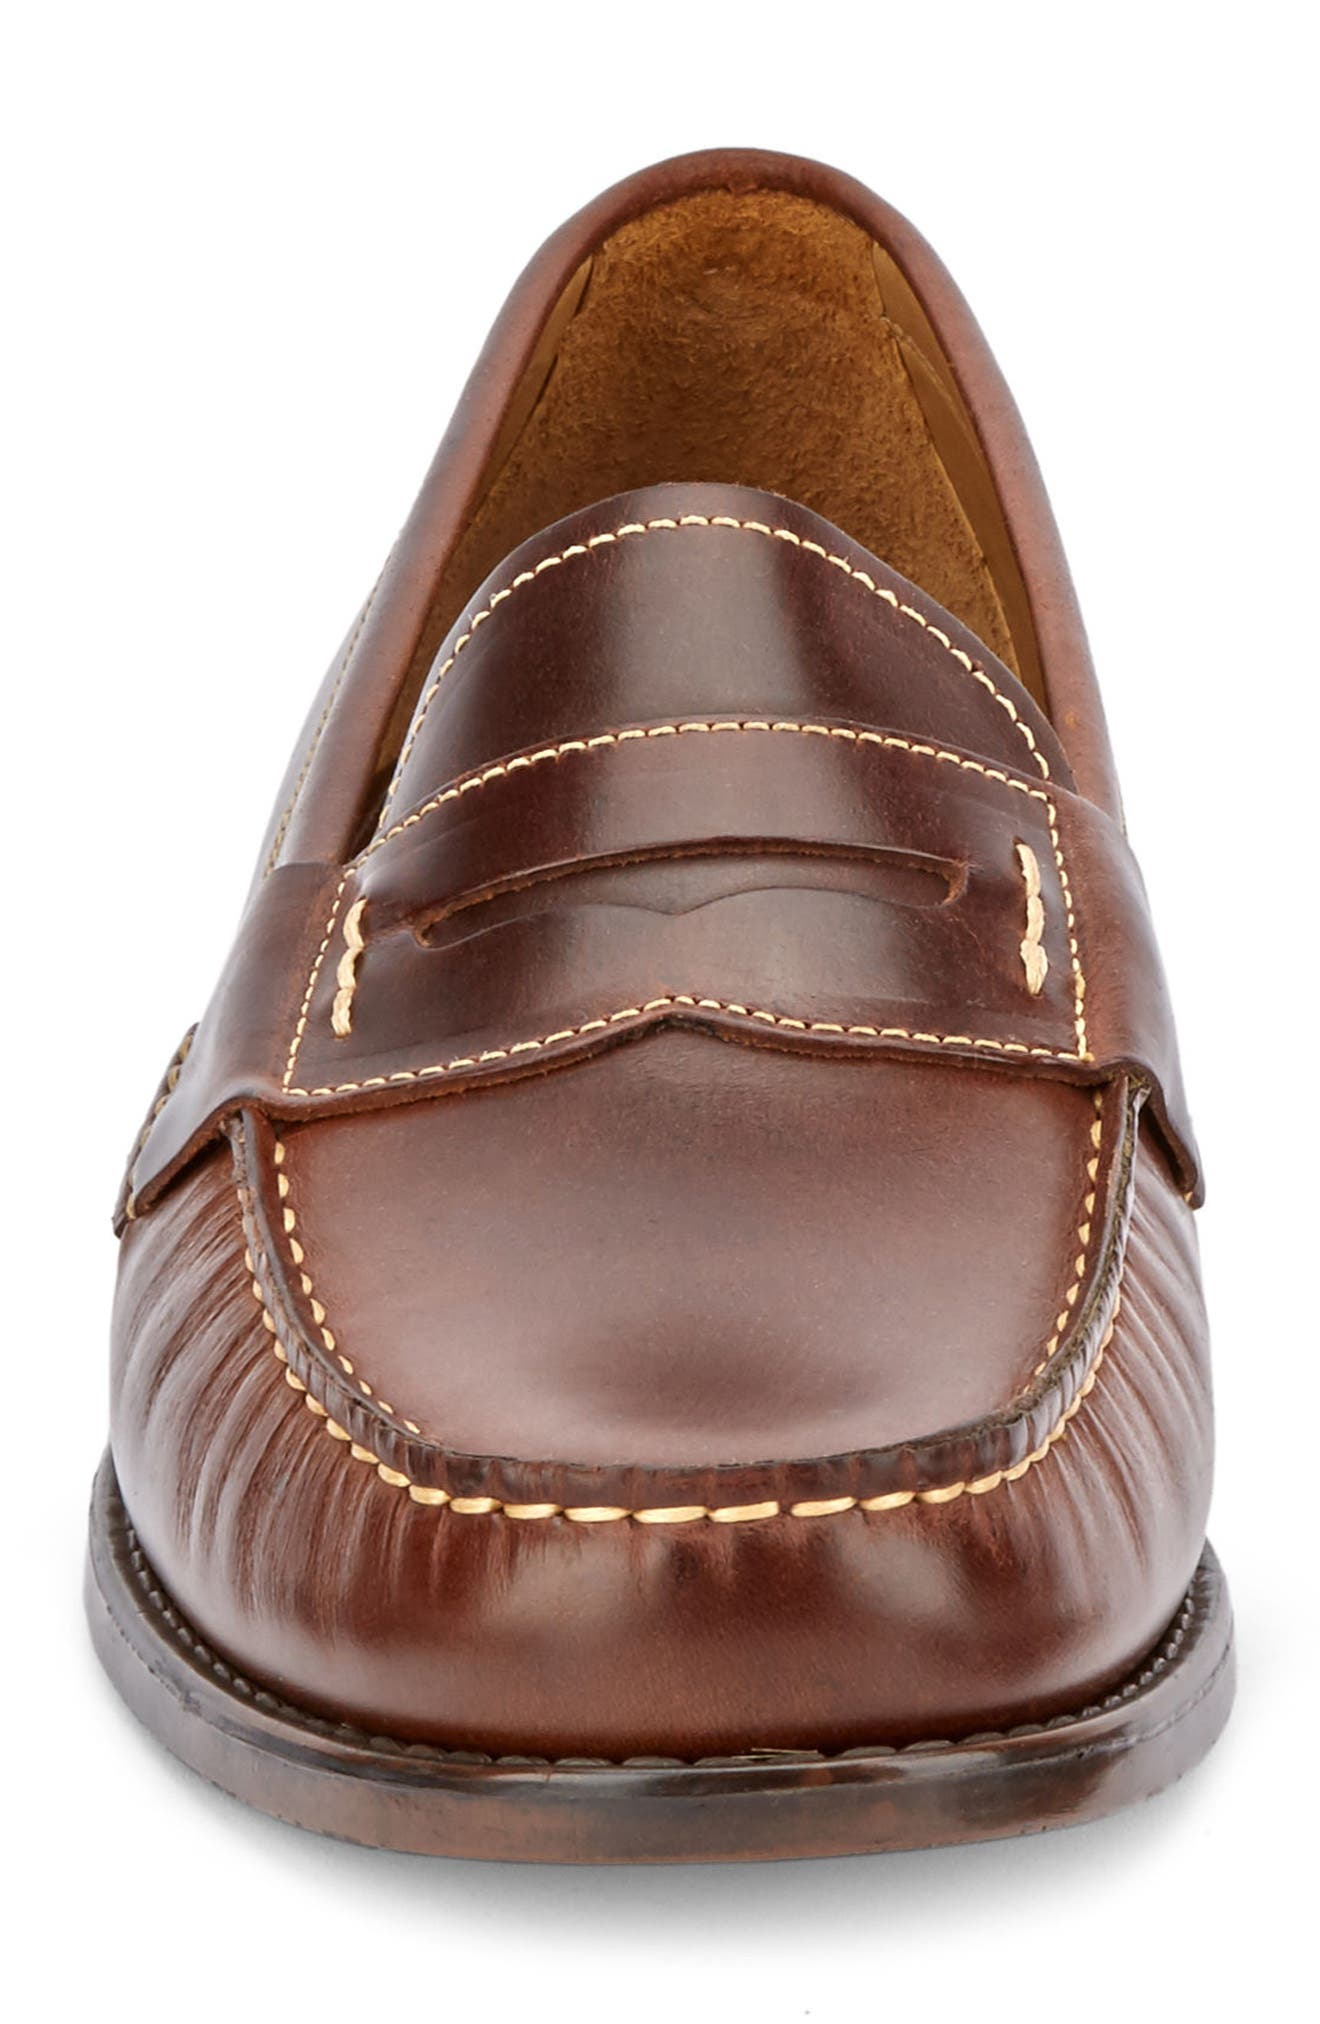 Wagner Penny Loafer,                             Alternate thumbnail 4, color,                             DARK BROWN LEATHER